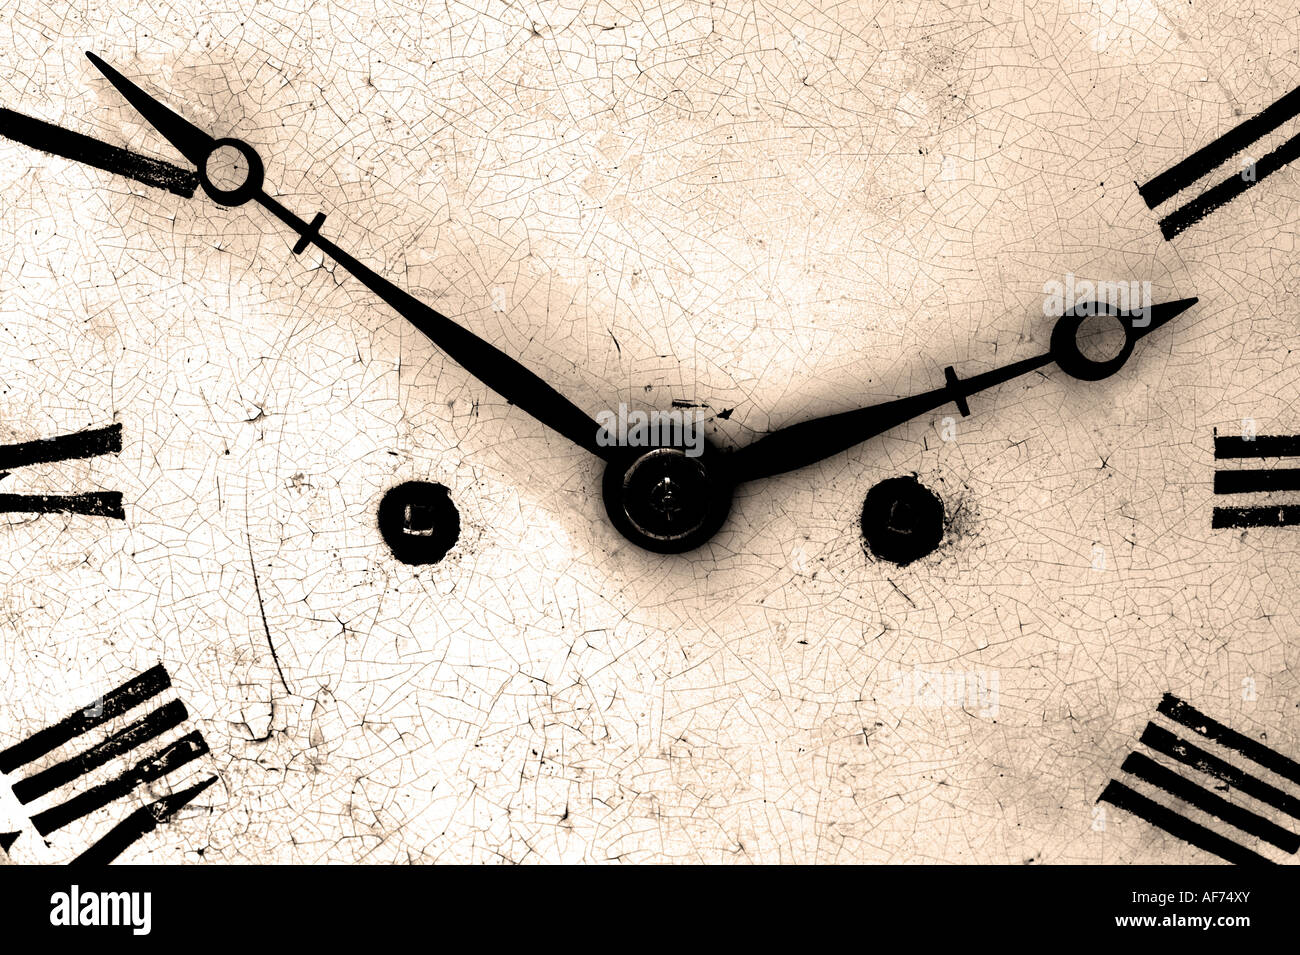 Close up of an antique clock face dark and grainy sepia toned - Stock Image